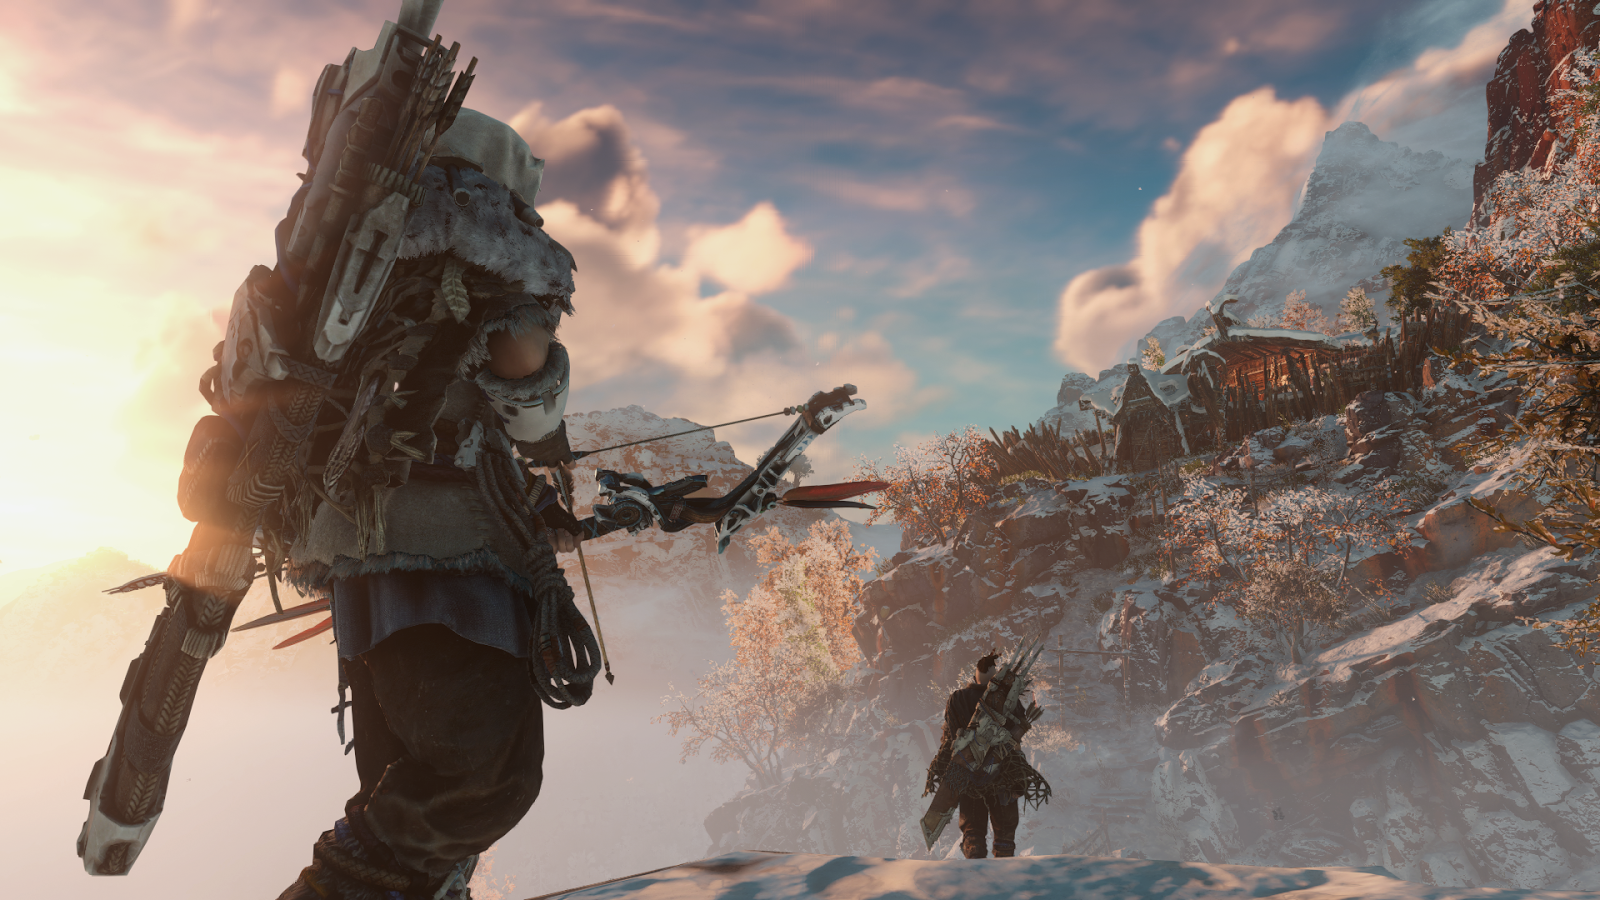 Horizon Zero Dawn Gets A Delay But Also Cool Collectors Edition Sony Playstation 4 Collector And Guerrilla Games Have Dropped An All New Trailer For Along With Details Of Sadly As Well